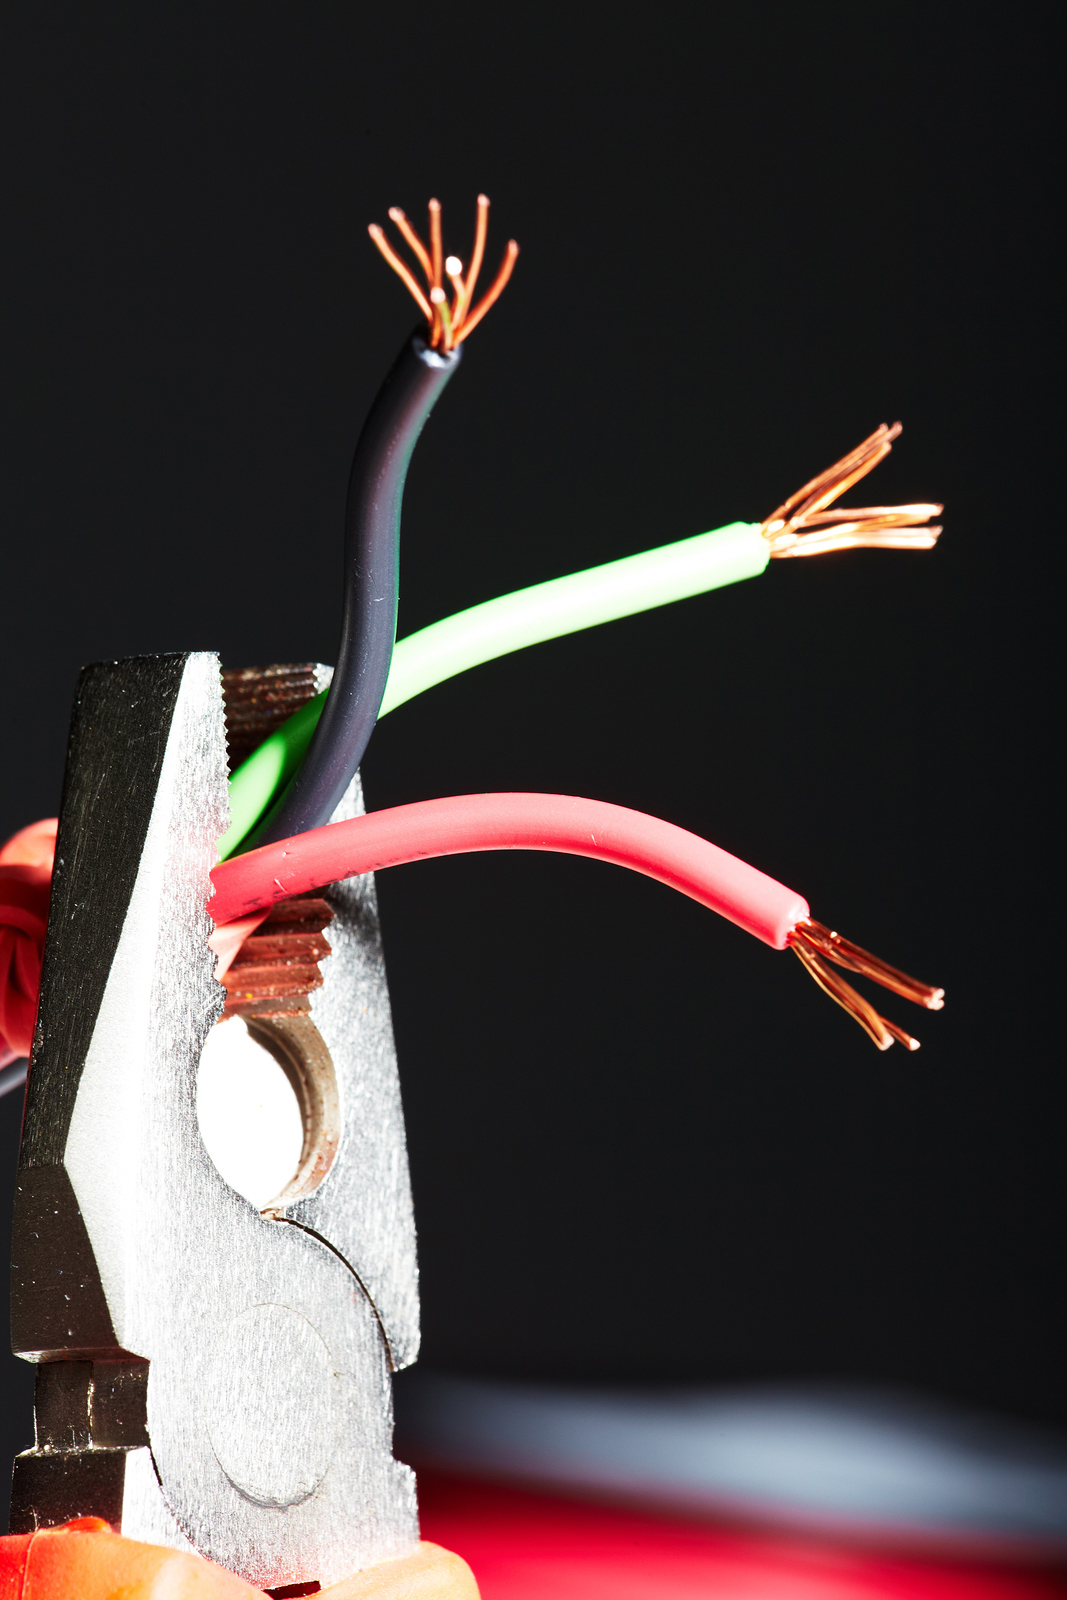 Wiring Plug Red White Black Wires